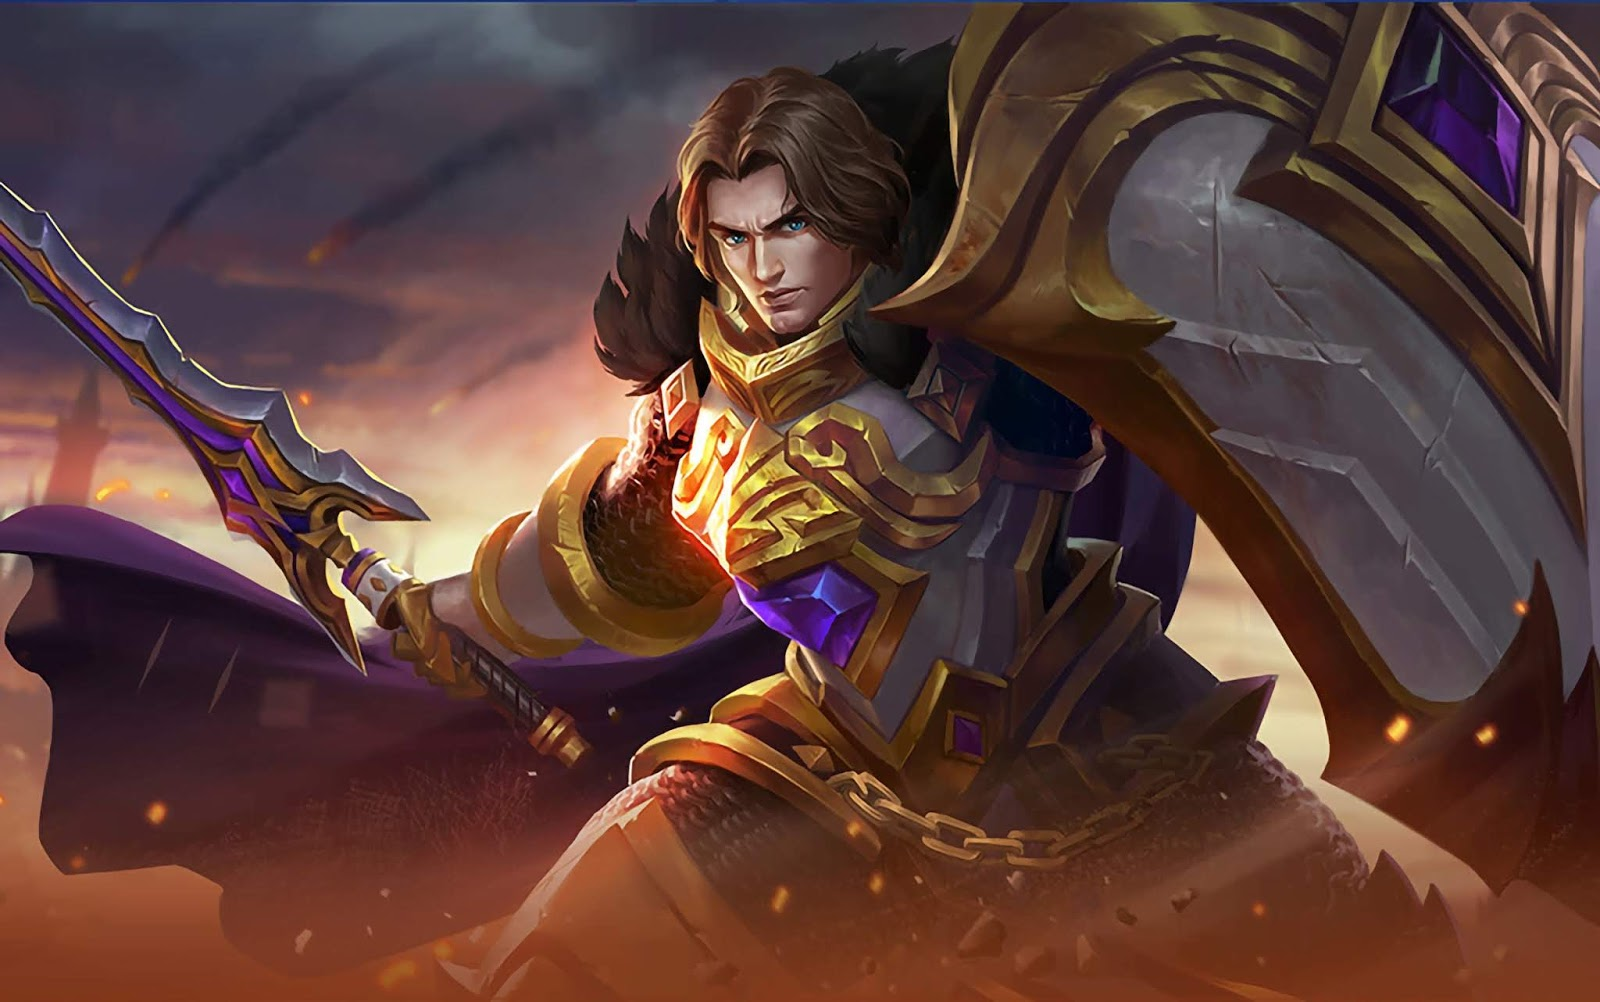 Wallpaper Tigreal Warrior Of Dawn Skin Mobile Legends HD for PC